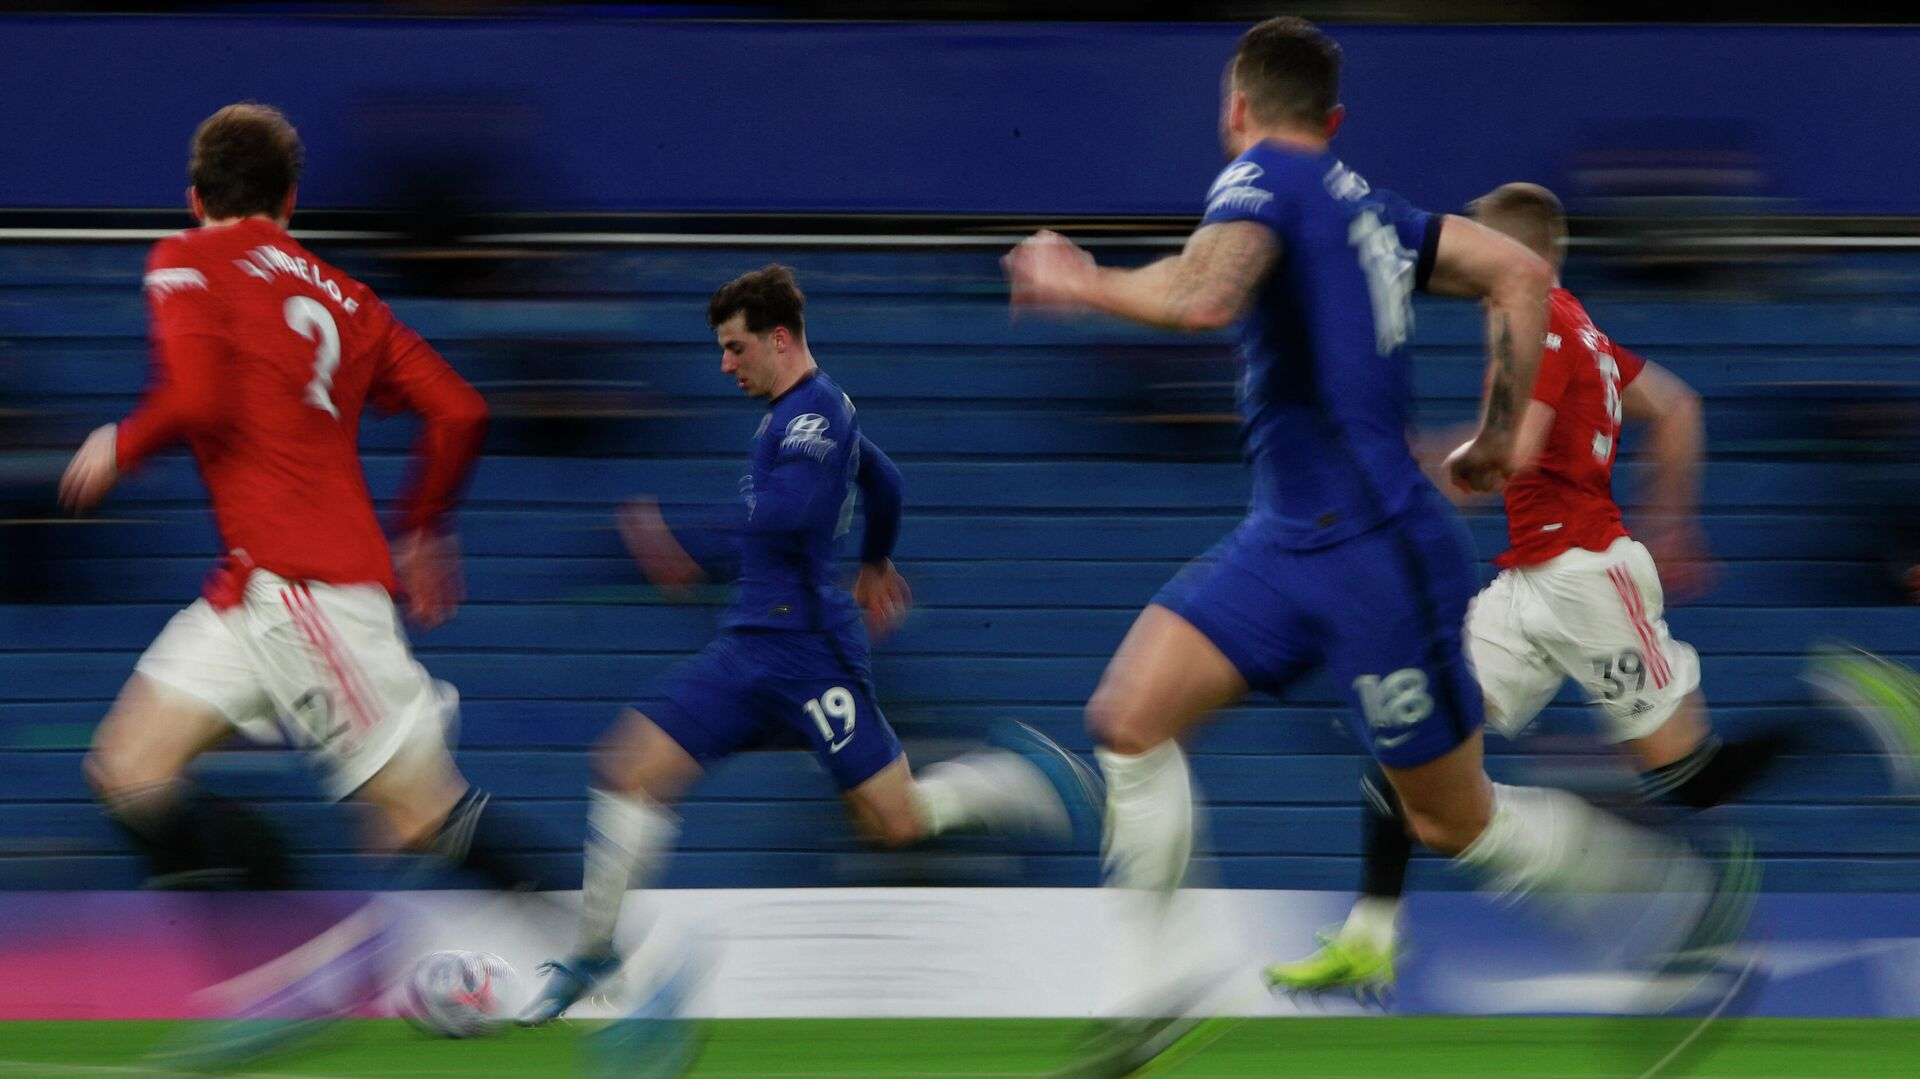 Chelsea's English midfielder Mason Mount (C) runs with the ball during the English Premier League football match between Chelsea and Manchester United at Stamford Bridge in London on February 28, 2021. (Photo by Ian Walton / POOL / AFP) / RESTRICTED TO EDITORIAL USE. No use with unauthorized audio, video, data, fixture lists, club/league logos or 'live' services. Online in-match use limited to 120 images. An additional 40 images may be used in extra time. No video emulation. Social media in-match use limited to 120 images. An additional 40 images may be used in extra time. No use in betting publications, games or single club/league/player publications. /  - РИА Новости, 1920, 28.02.2021